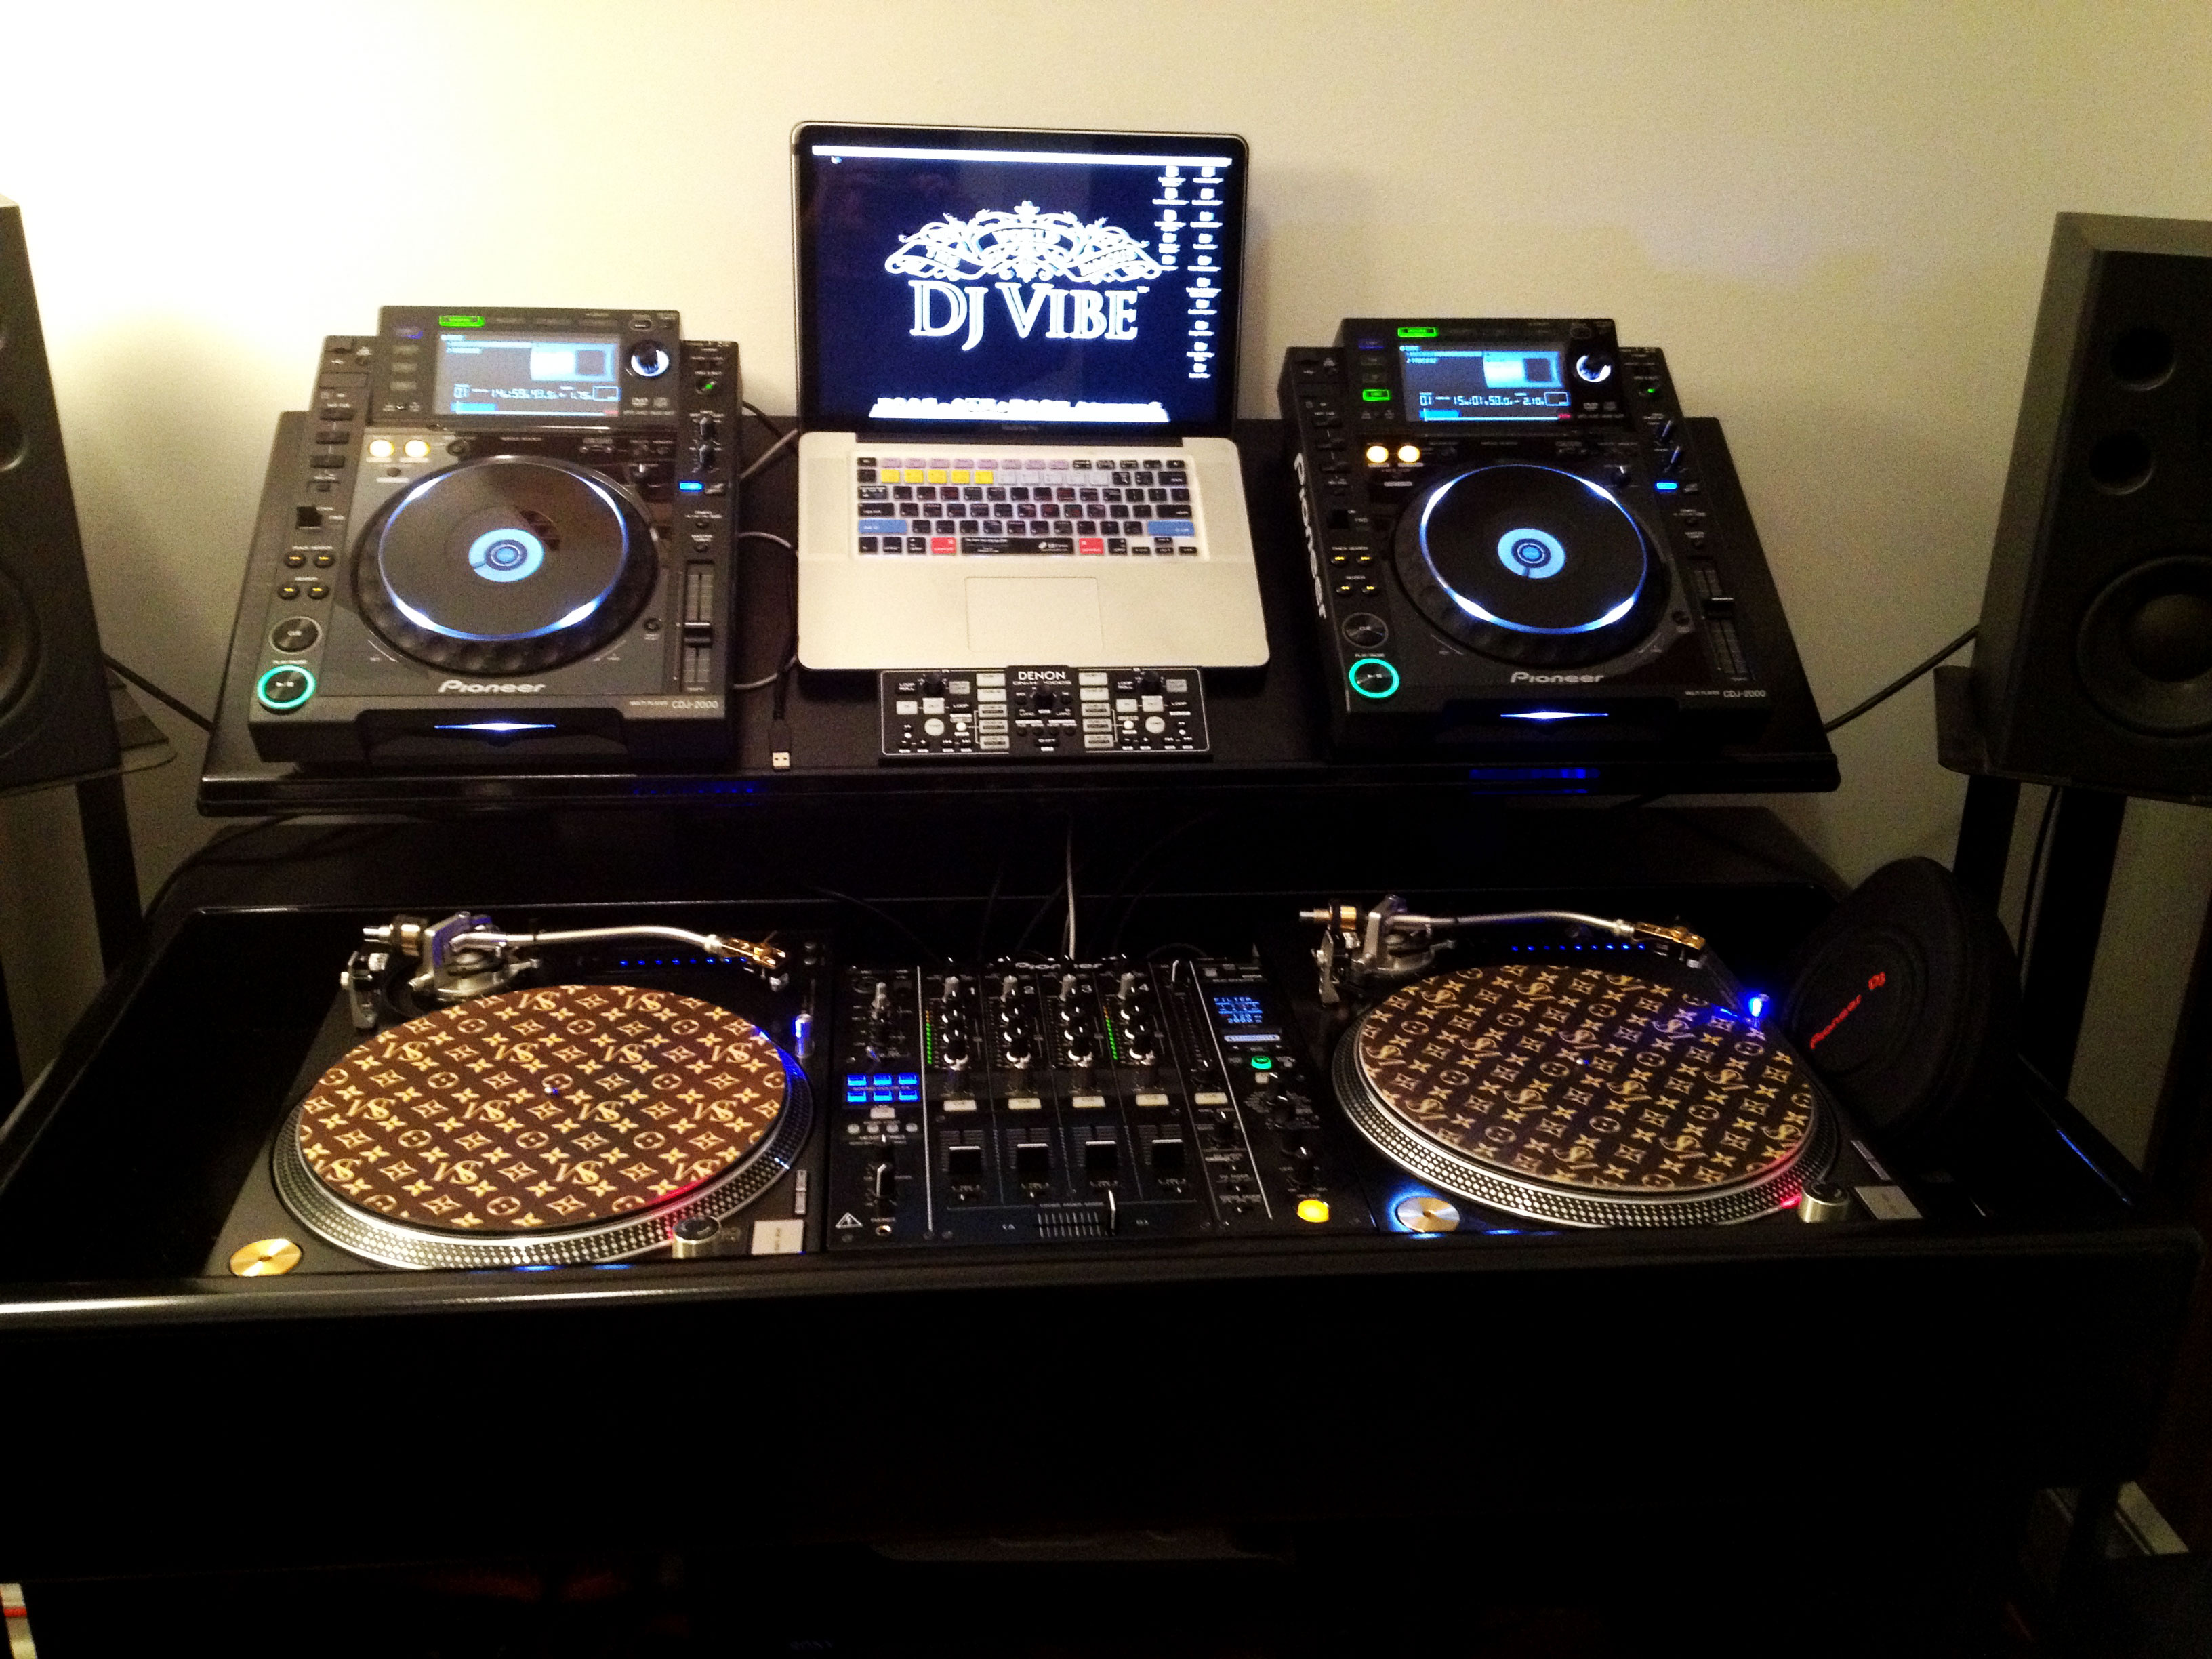 dan barnes the ultimate dj console dj vibe. Black Bedroom Furniture Sets. Home Design Ideas